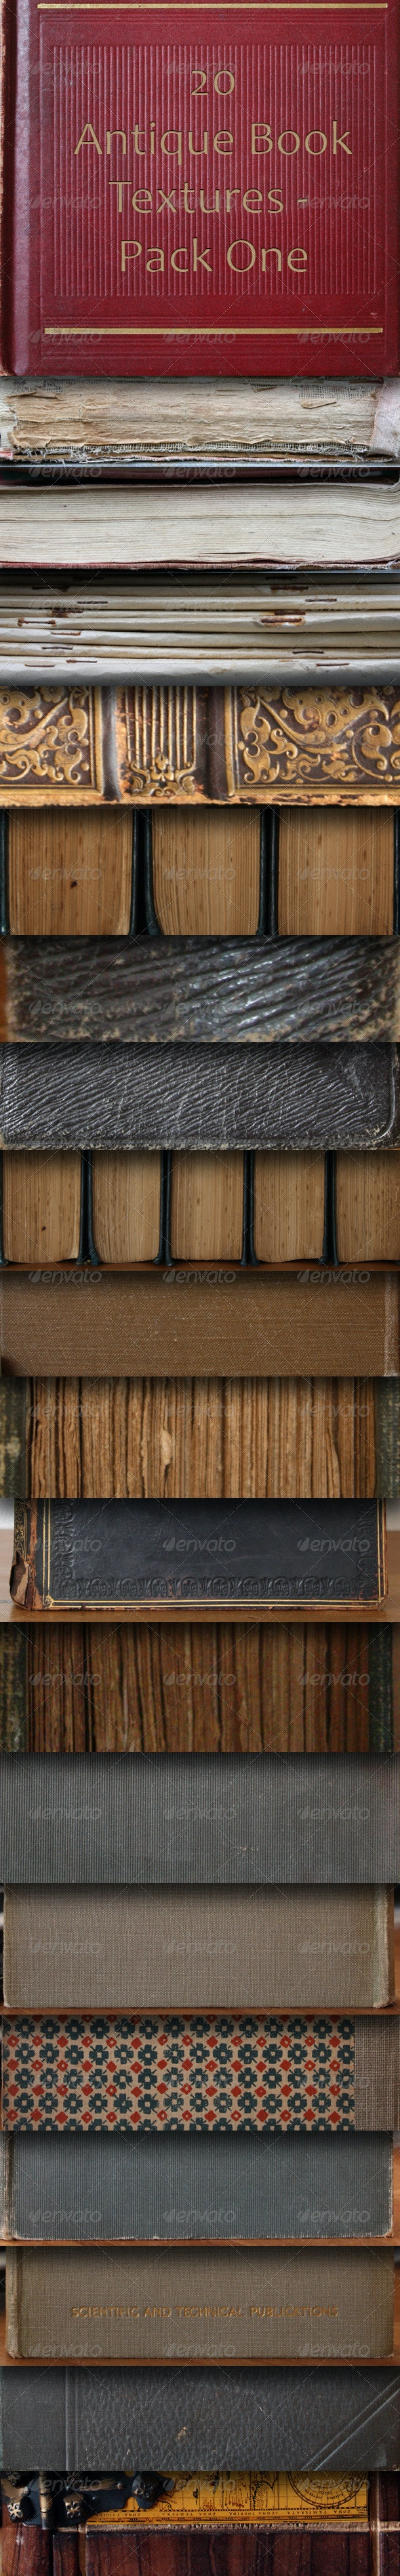 20 Antique Book Textures - Pack One  - Miscellaneous Textures